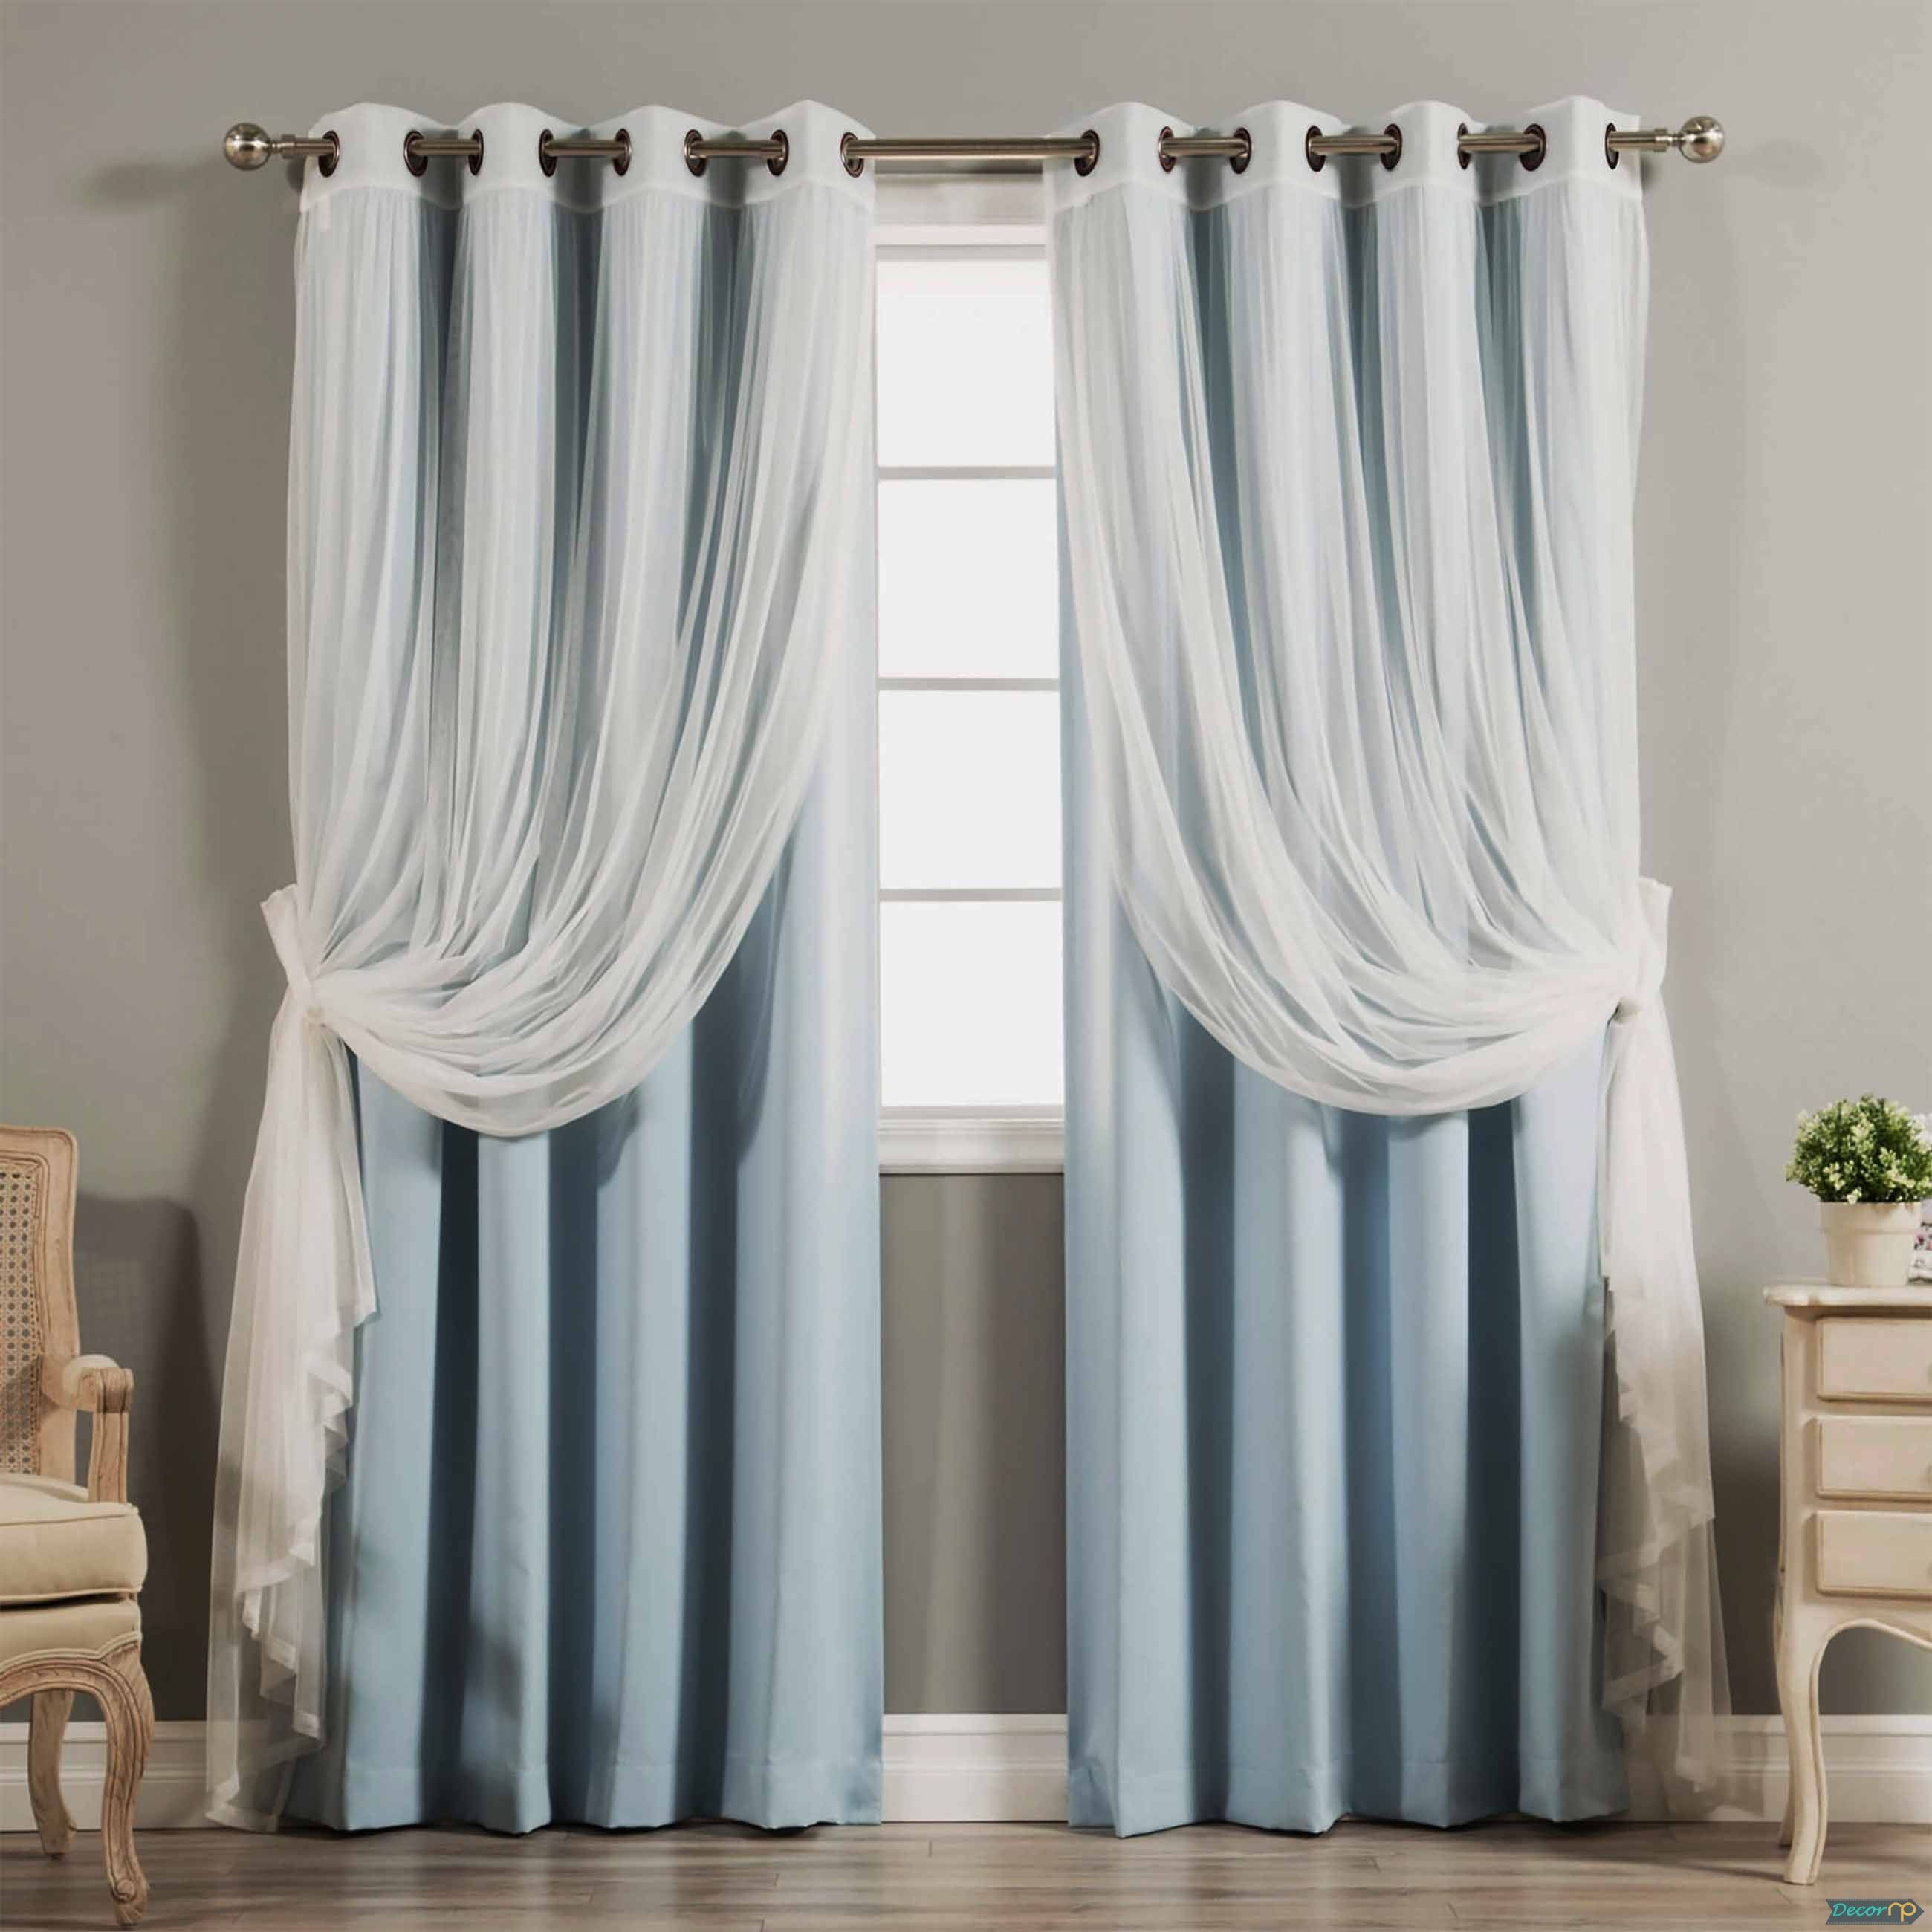 Big Living Room Curtains 30 Very Stylish Living Room Curtain